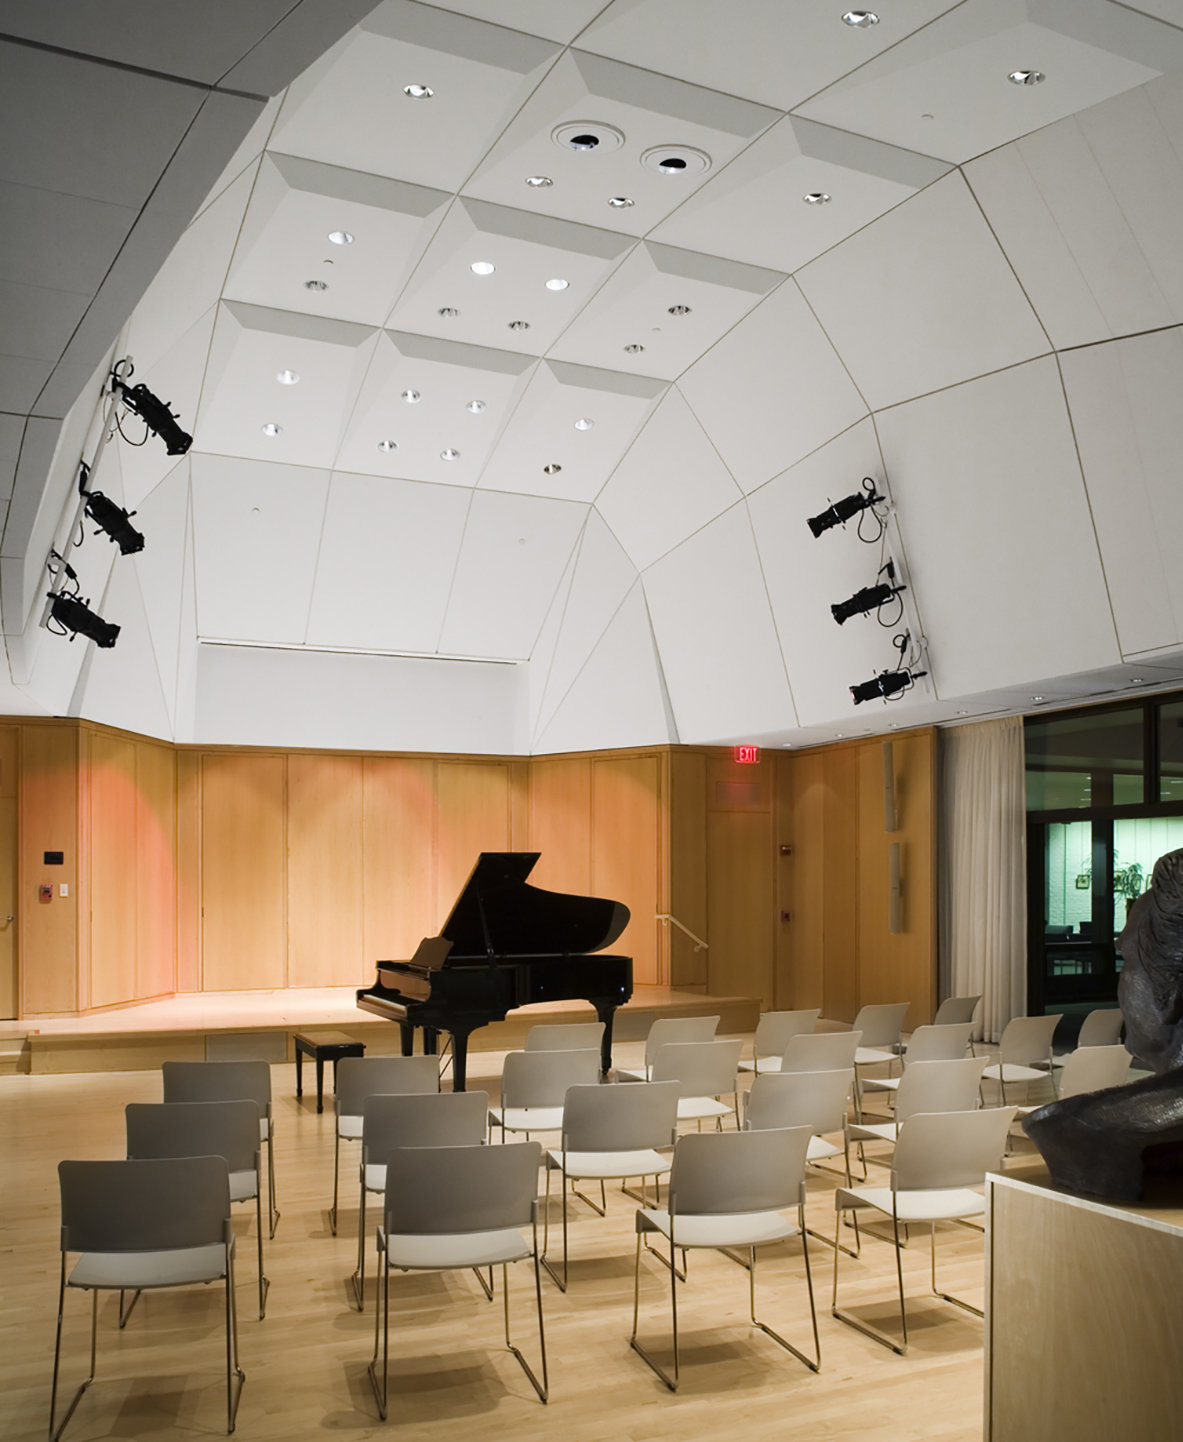 12 tskp wilton wilton library interior detail inside piano hall with lighting and seating layout 1400 0x320x1183x1442 q85